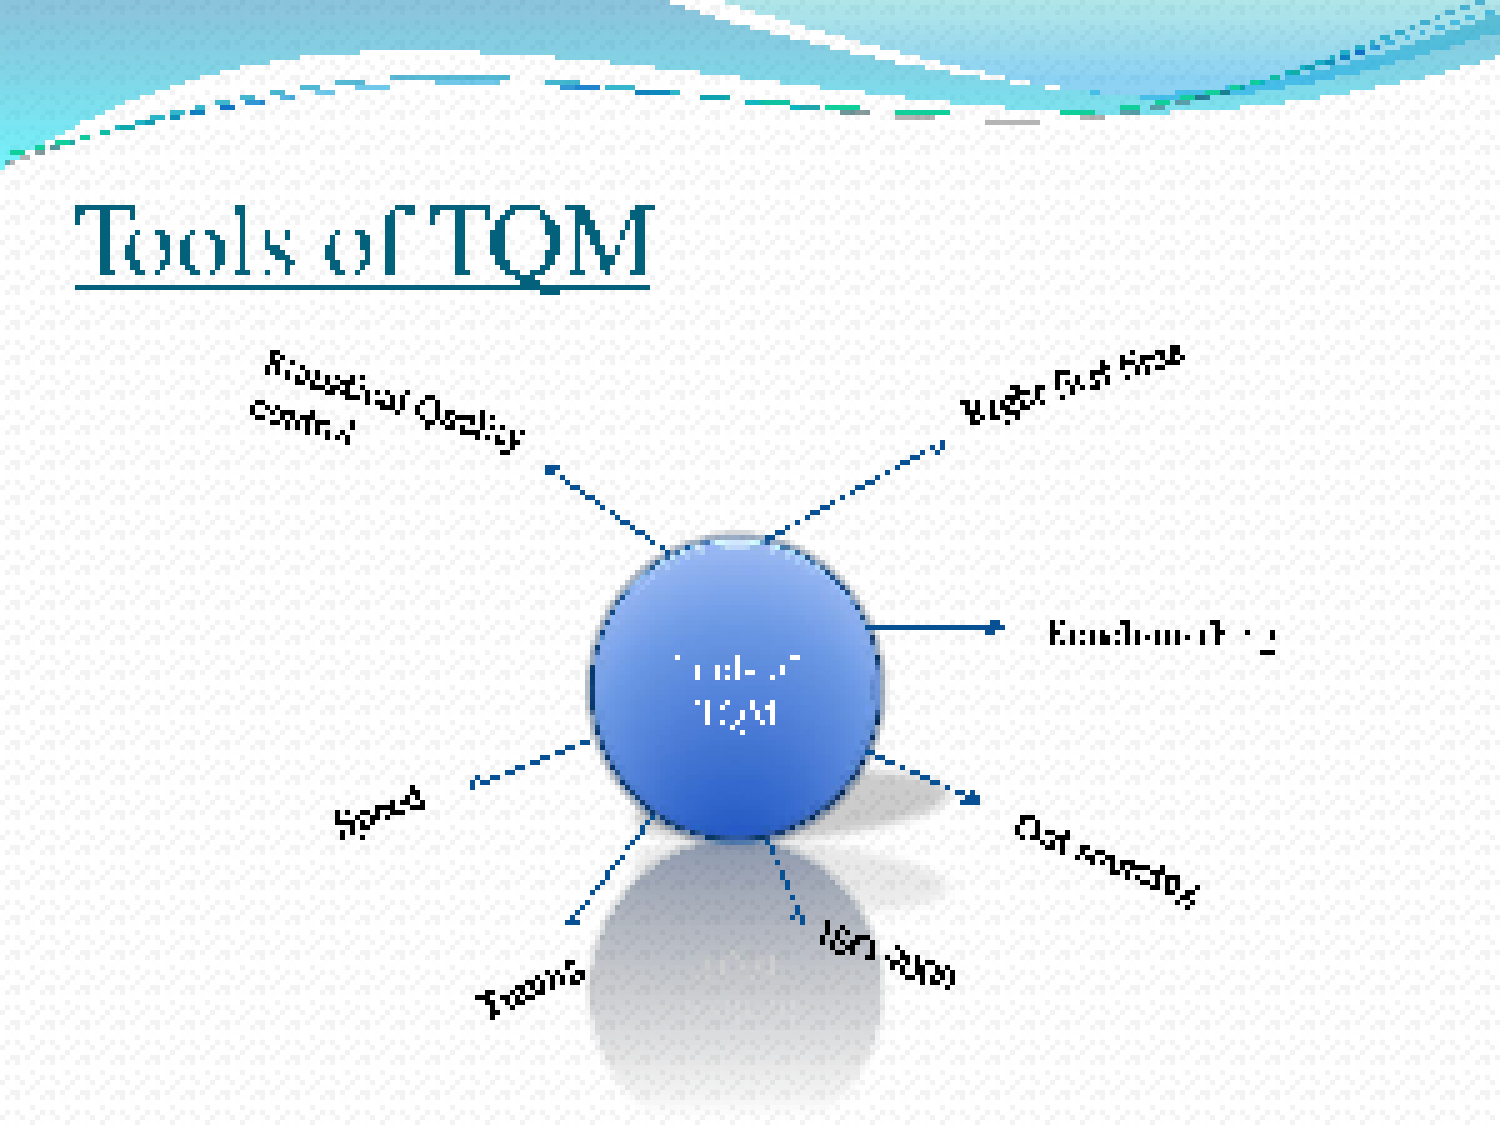 tqm implementation of shanghai la hotel The implementation of total quality management is similar to that of other decentralized control methods in developing tqm, companies need to understand how consumers define quality in both the goods and services offered if a company pays more attention to quality in its production process.